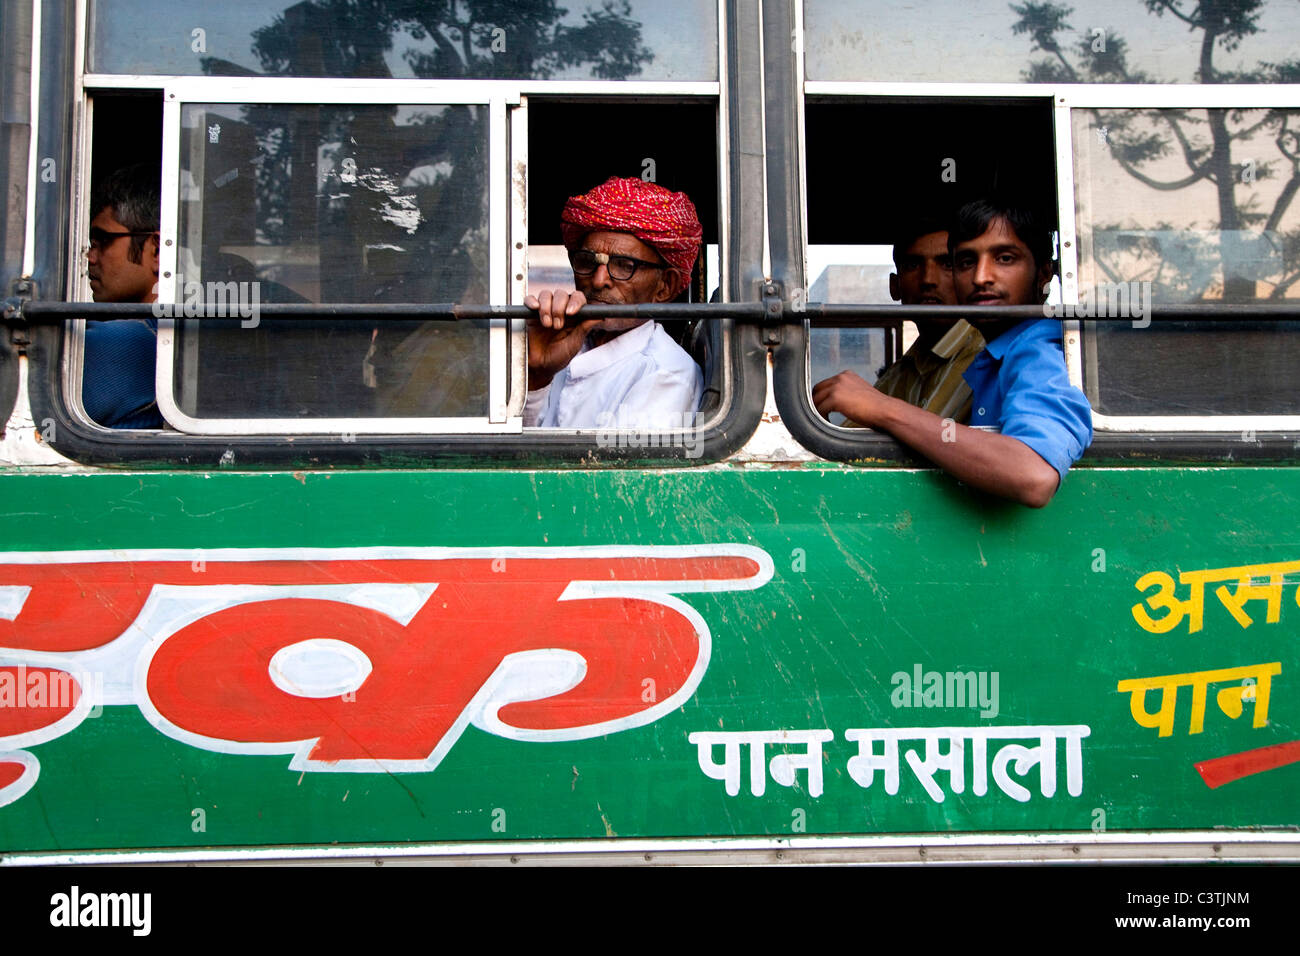 People on bus, Jaipur, Rajasthan, India, Asia - Stock Image